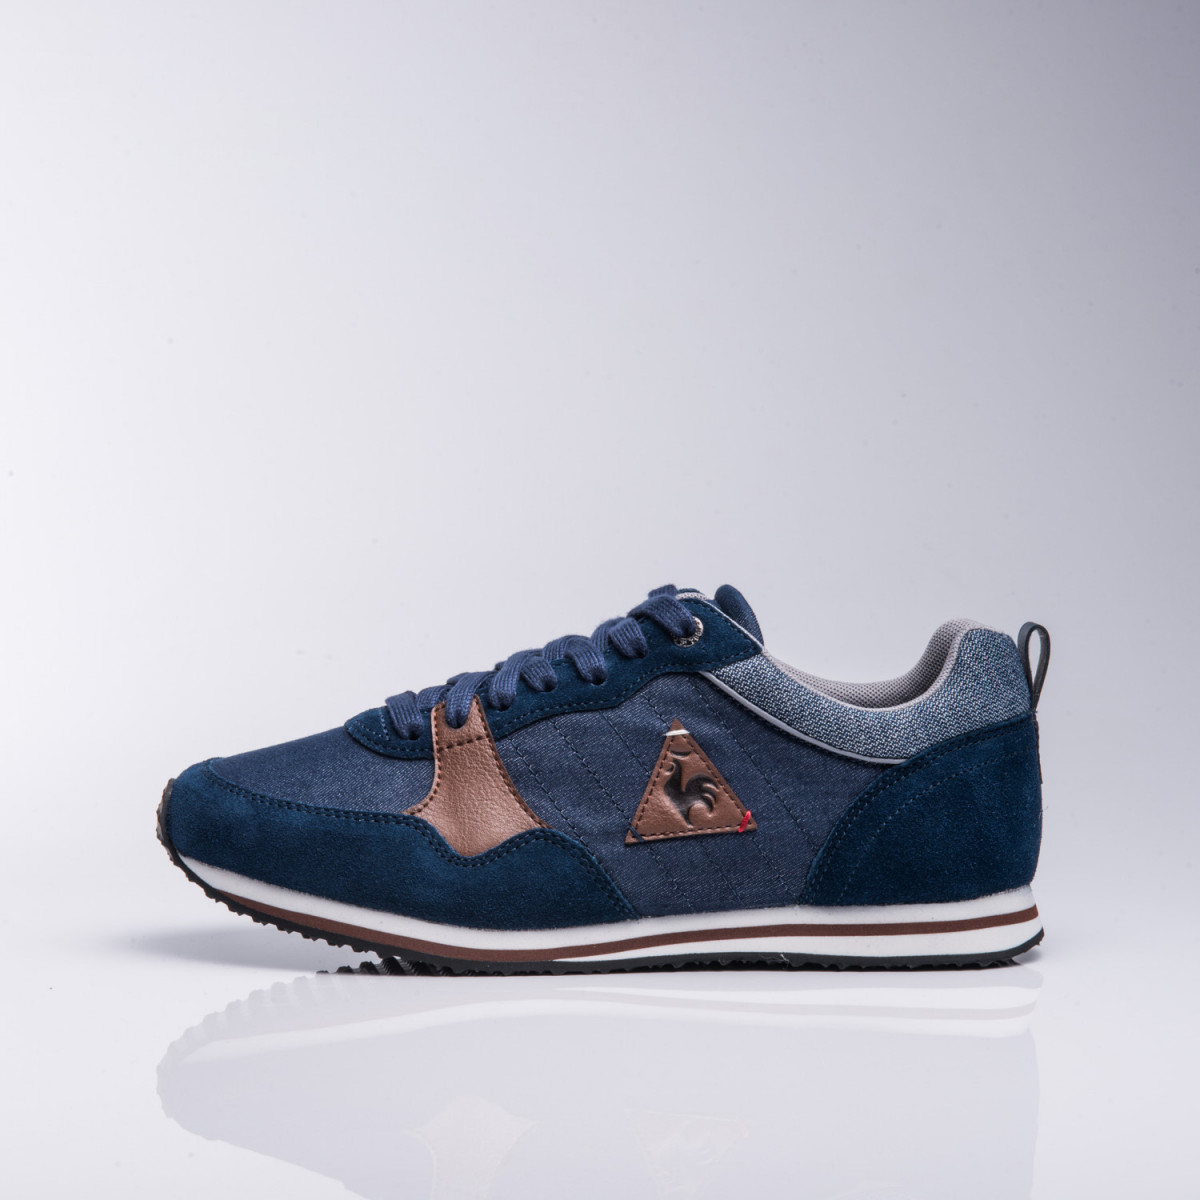 Zapatillas Le Coq Sportif Bolivar Craft